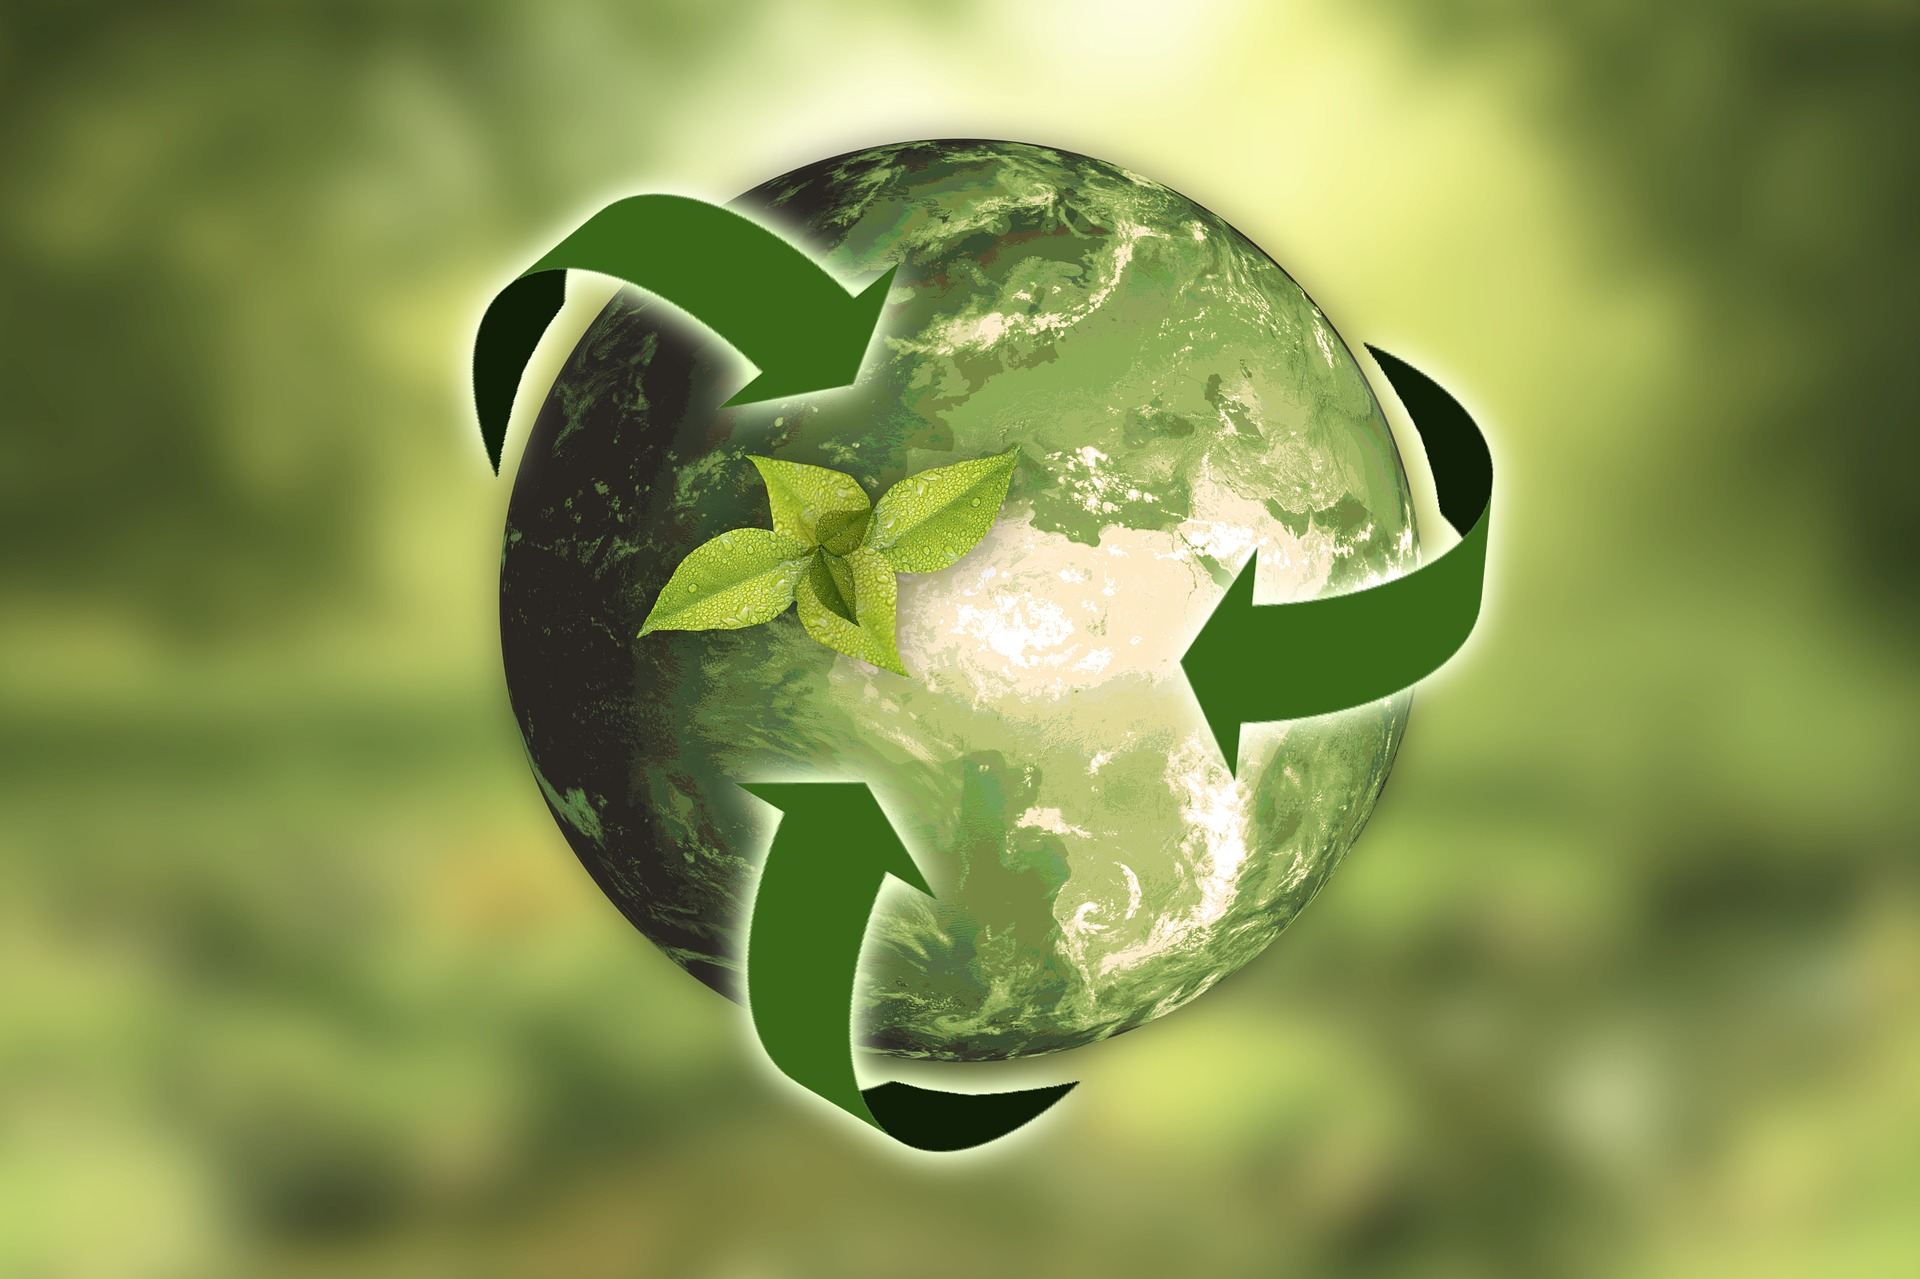 America Recycles Day is an opportunity to recognize the importance of recycling to our Nation's economy and environment